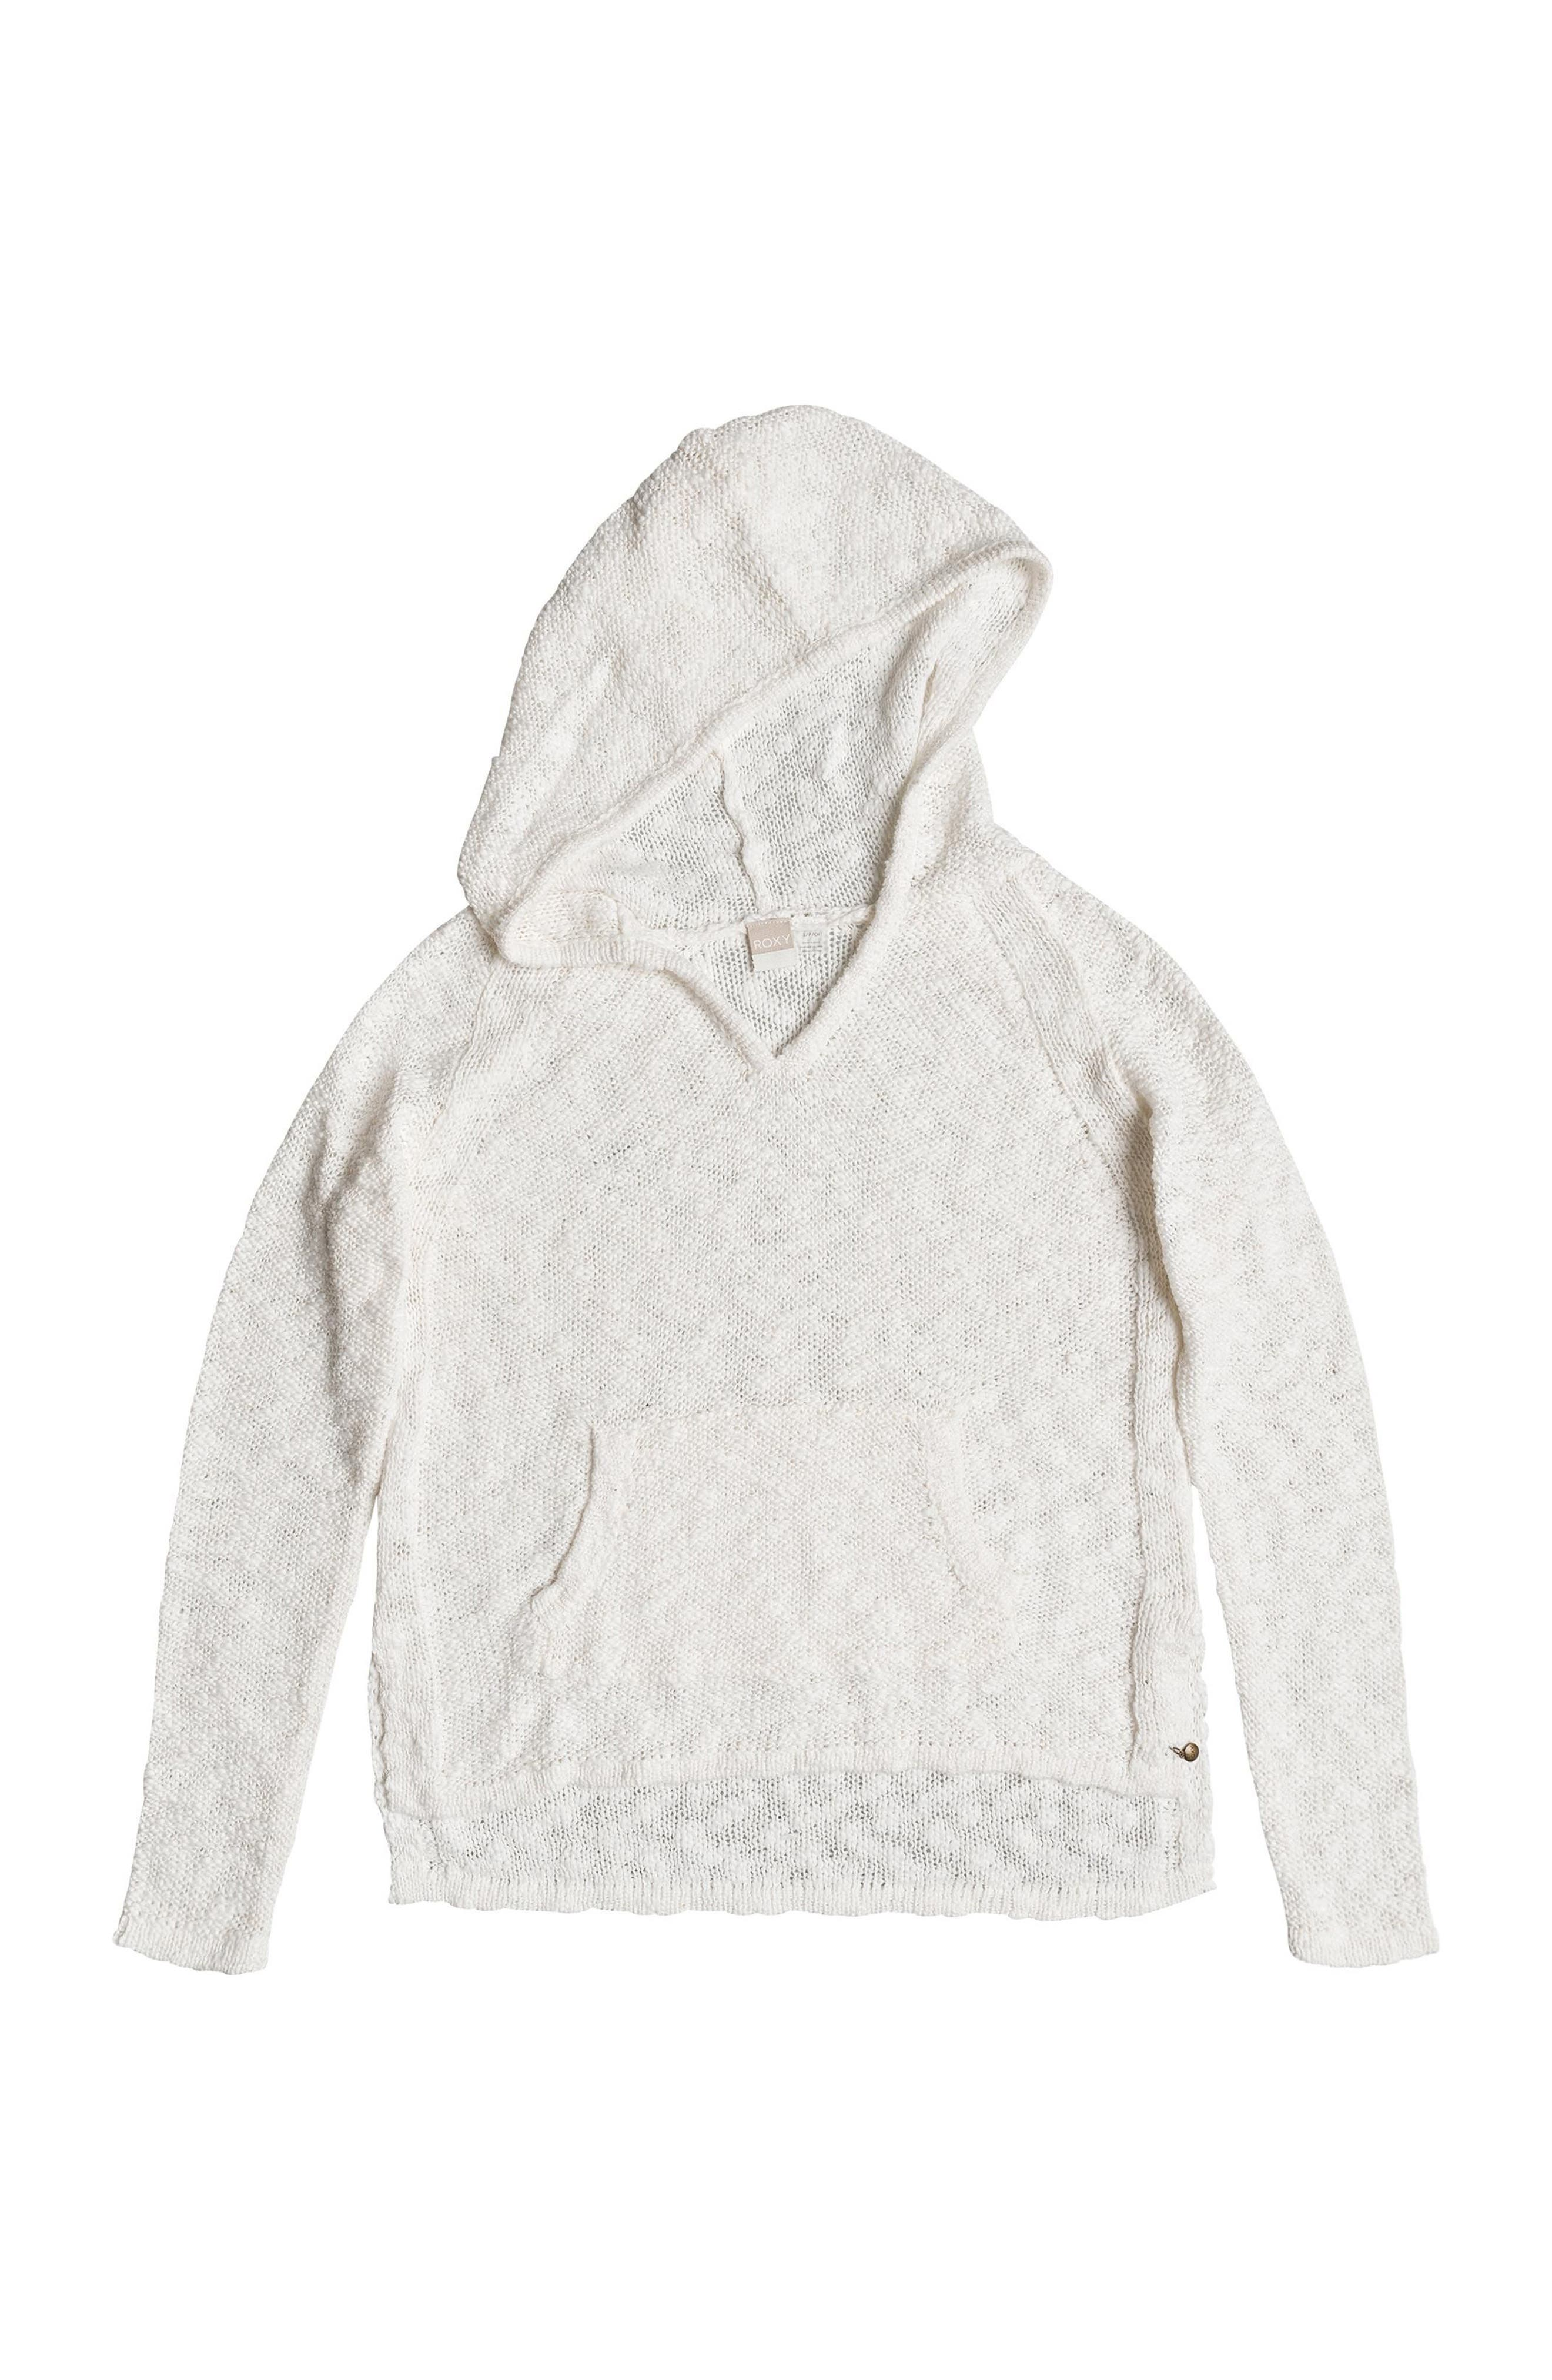 Slouchy Morning Cotton Knit Hoodie,                             Alternate thumbnail 3, color,                             101